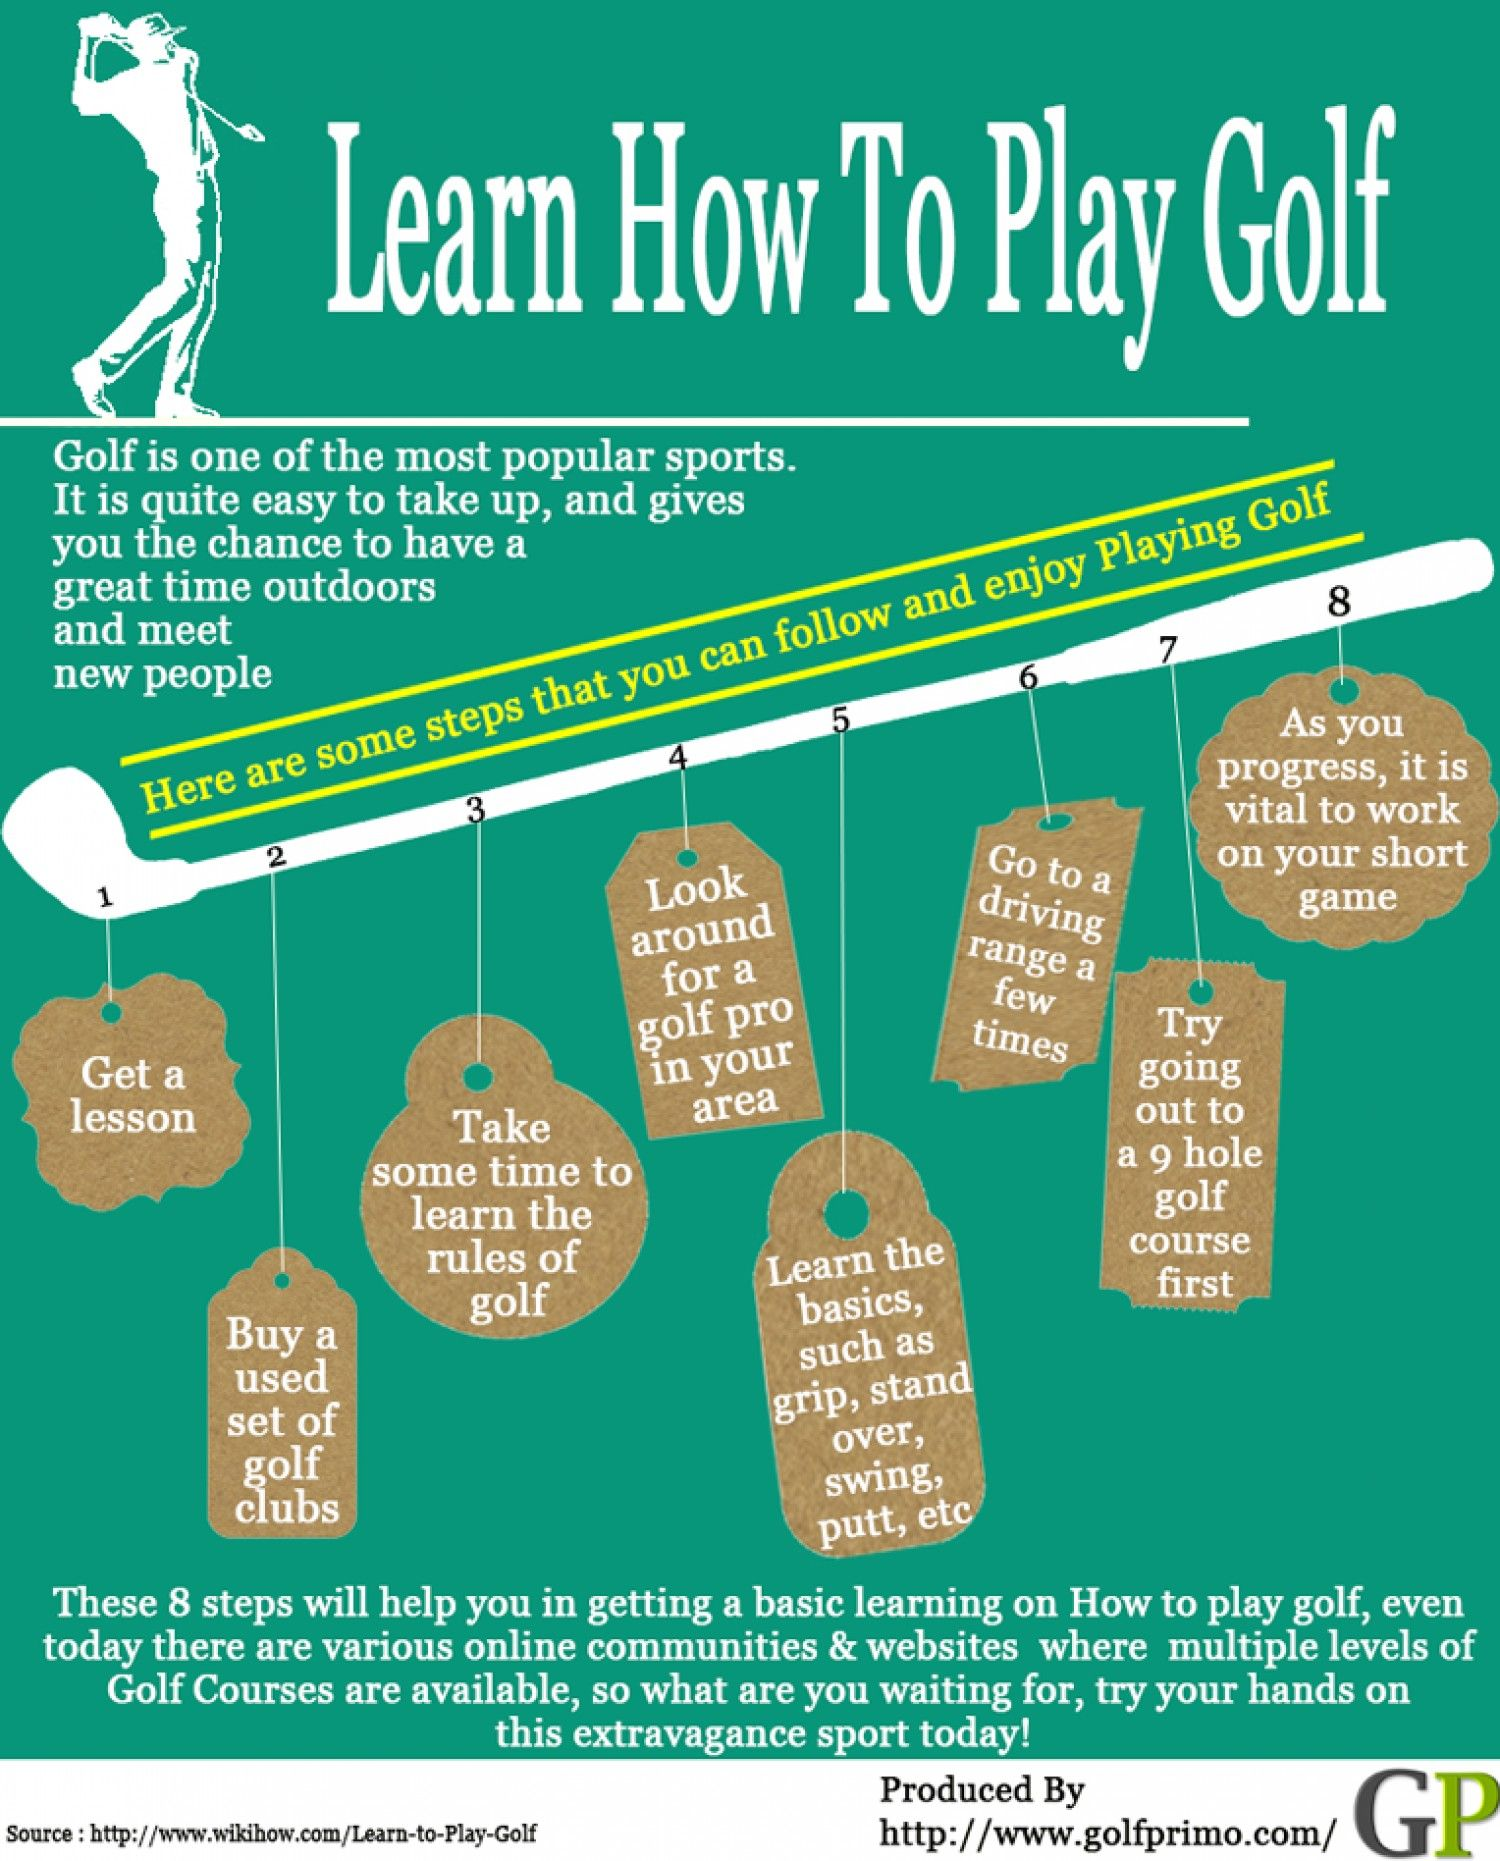 Learn How To Play Golf Infographic With These 8 Steps On How To Start Playing Golf And Enjoying The Gam Golf Tips For Beginners Golf Lessons How To Play Tennis